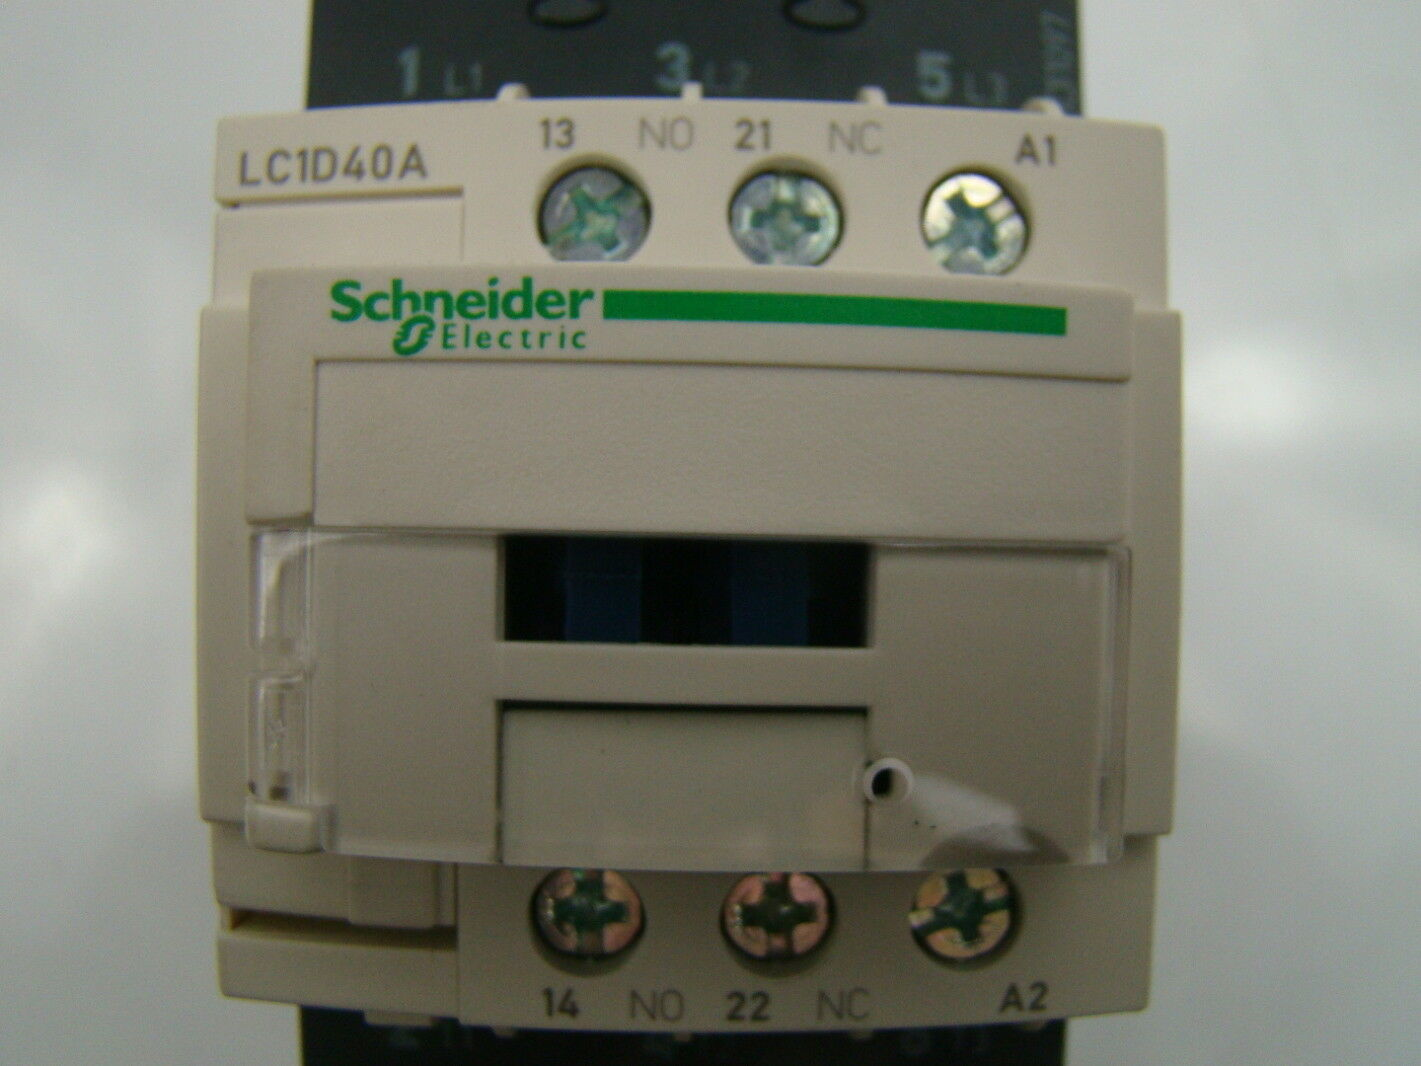 Schneider Electric 3 Pole Contactor Lc1d40ag7 Ebay Miller Xmt Wire Diagram